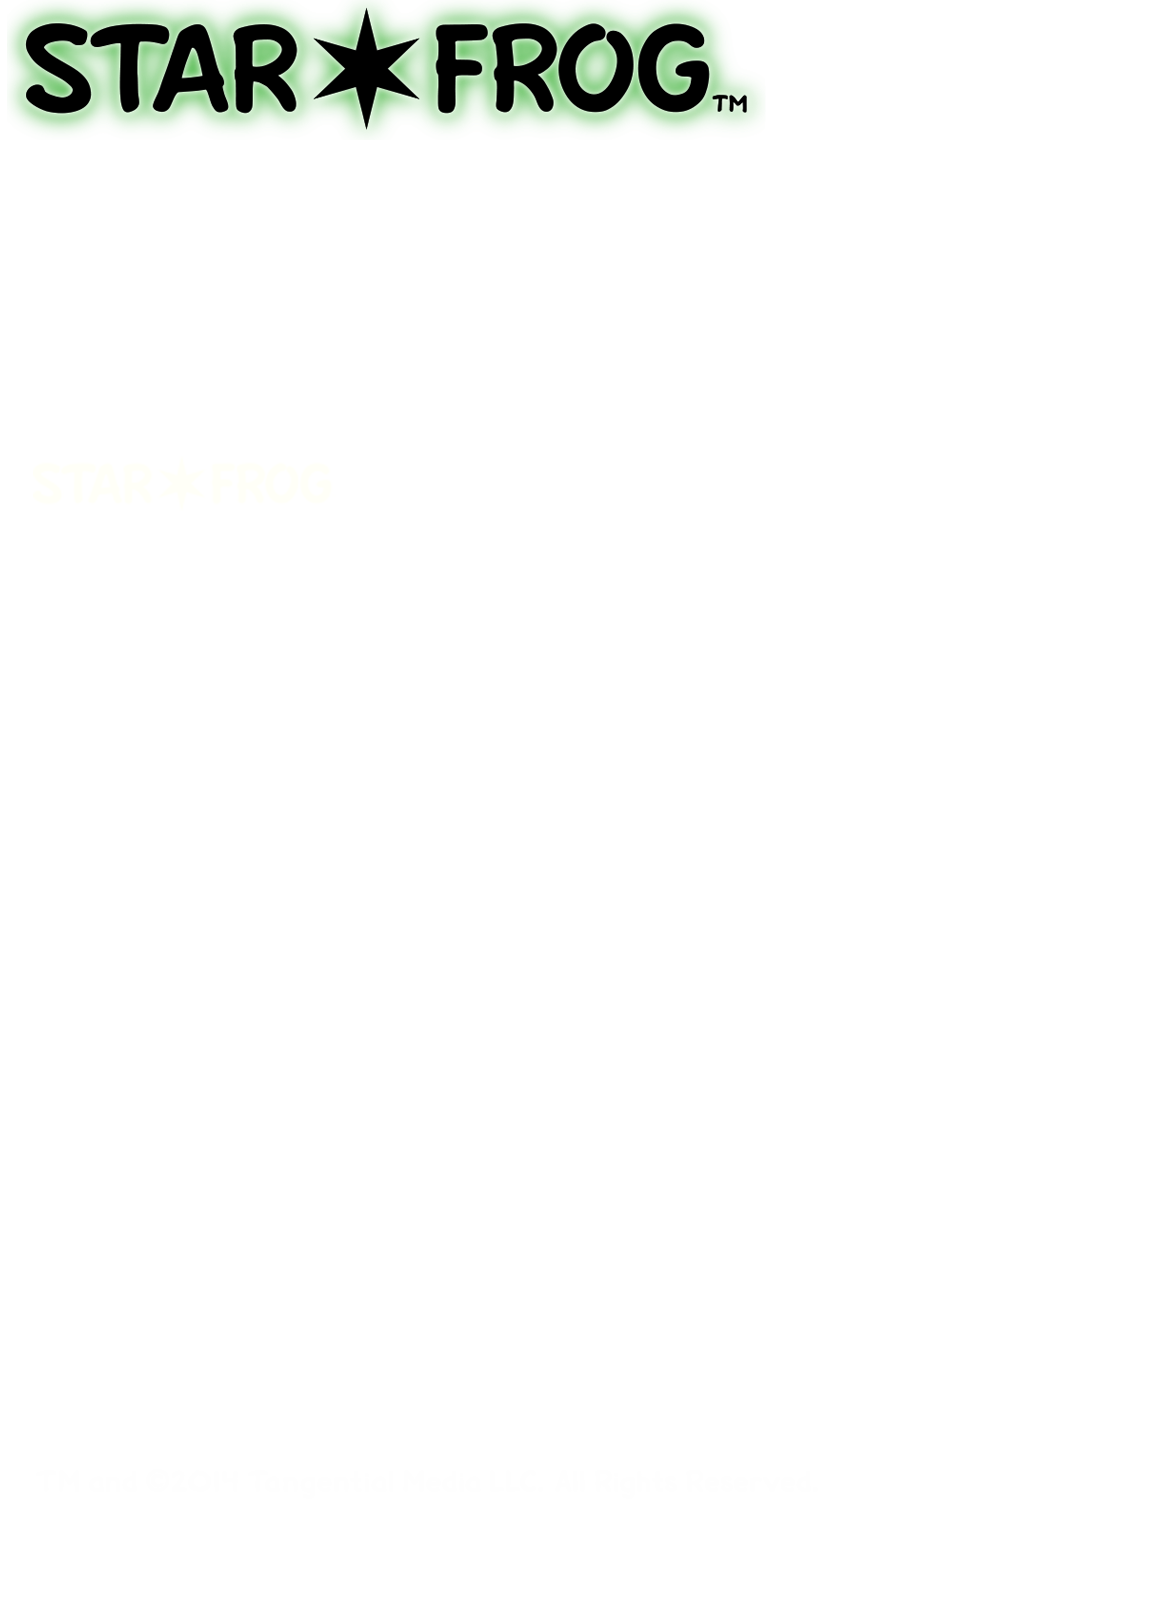 STAR*FROG Logo and Informational Text :: Star*Frog is a lifestyle brand communicated through beautiful imagery strong enough to stand out in a crowd yet minimalistic enough to provide a personalized brand experience. The Frog Prince and his wingman Fly are the fun faces of the brand who show up to set the tone, amuse and keep things a bit cheeky. Inspired by the universality of emoji, our various brand icons create a positive, playful and empowering language that can be used as a means of self-expression or enjoyed solely for the fun emotional response they evoke.